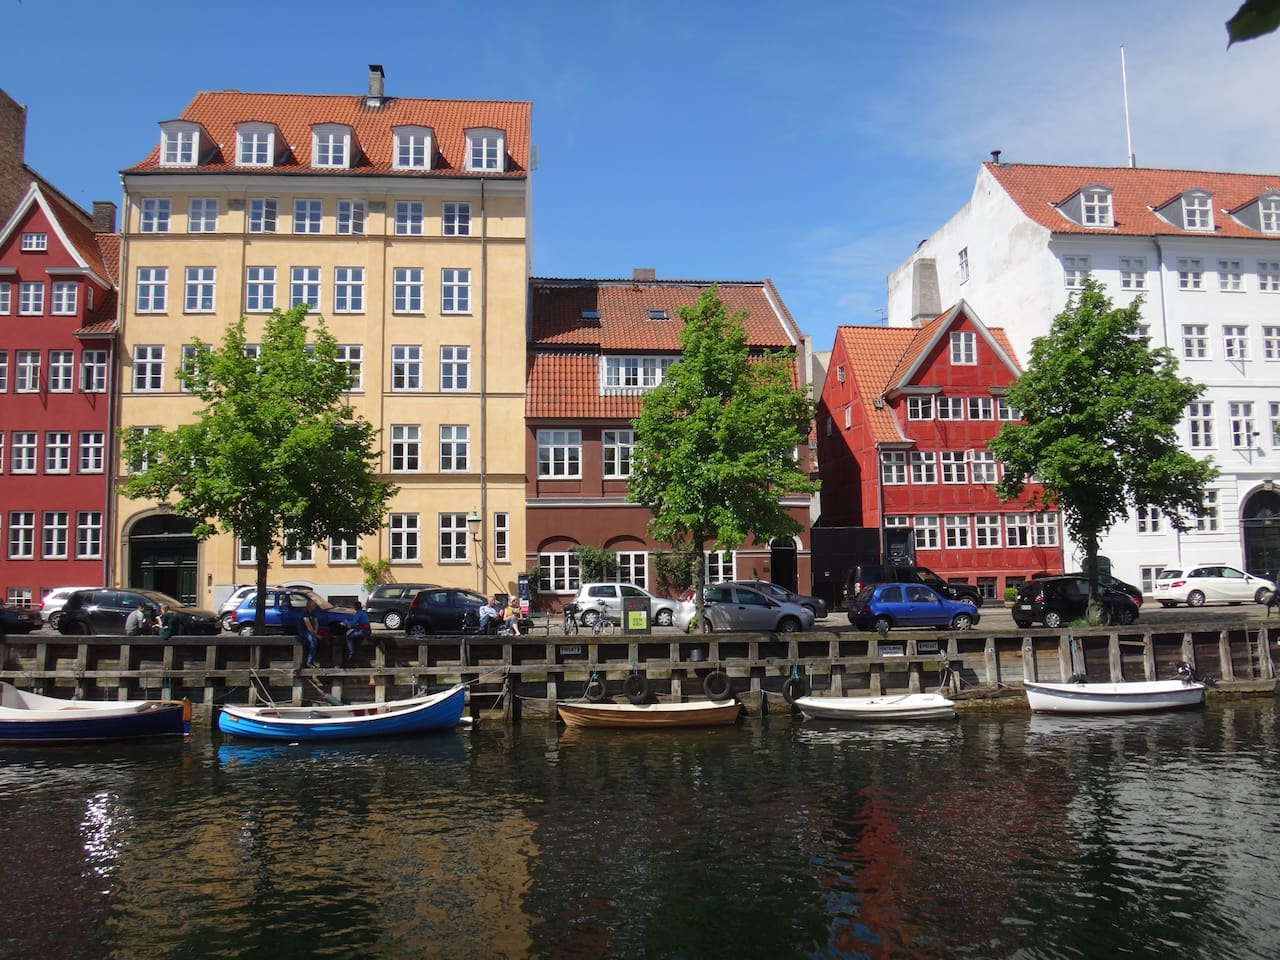 Old colorful buildings along Christianshavn canal